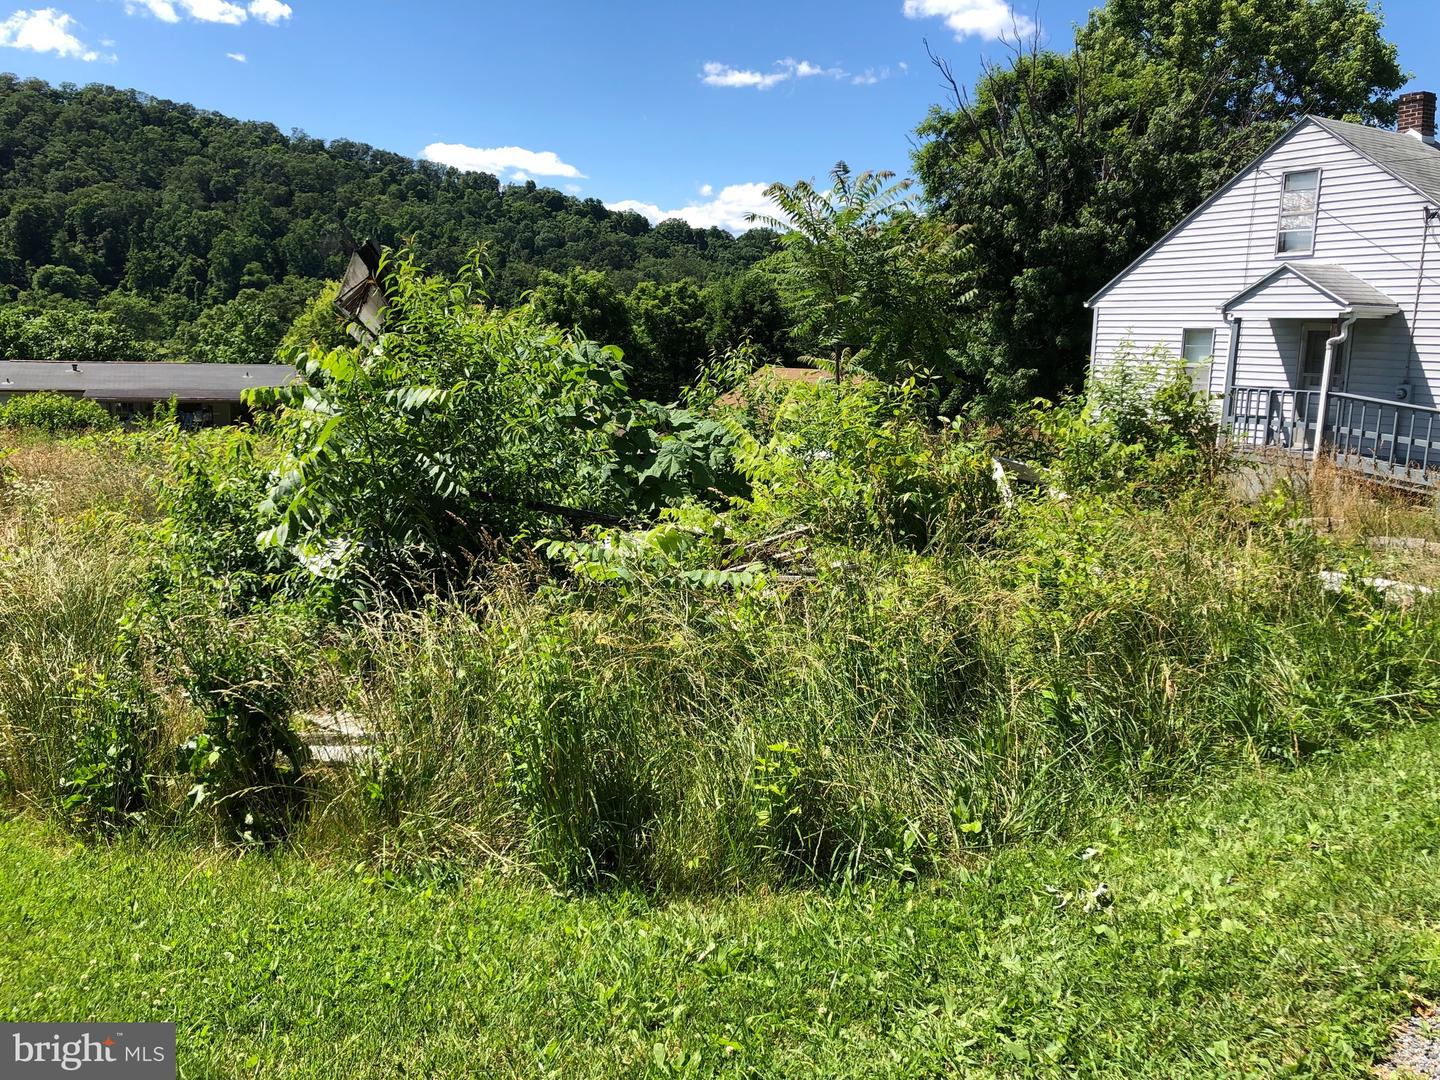 Land for Sale at 324 Greenway Dr Berkeley Springs, West Virginia 25411 United States